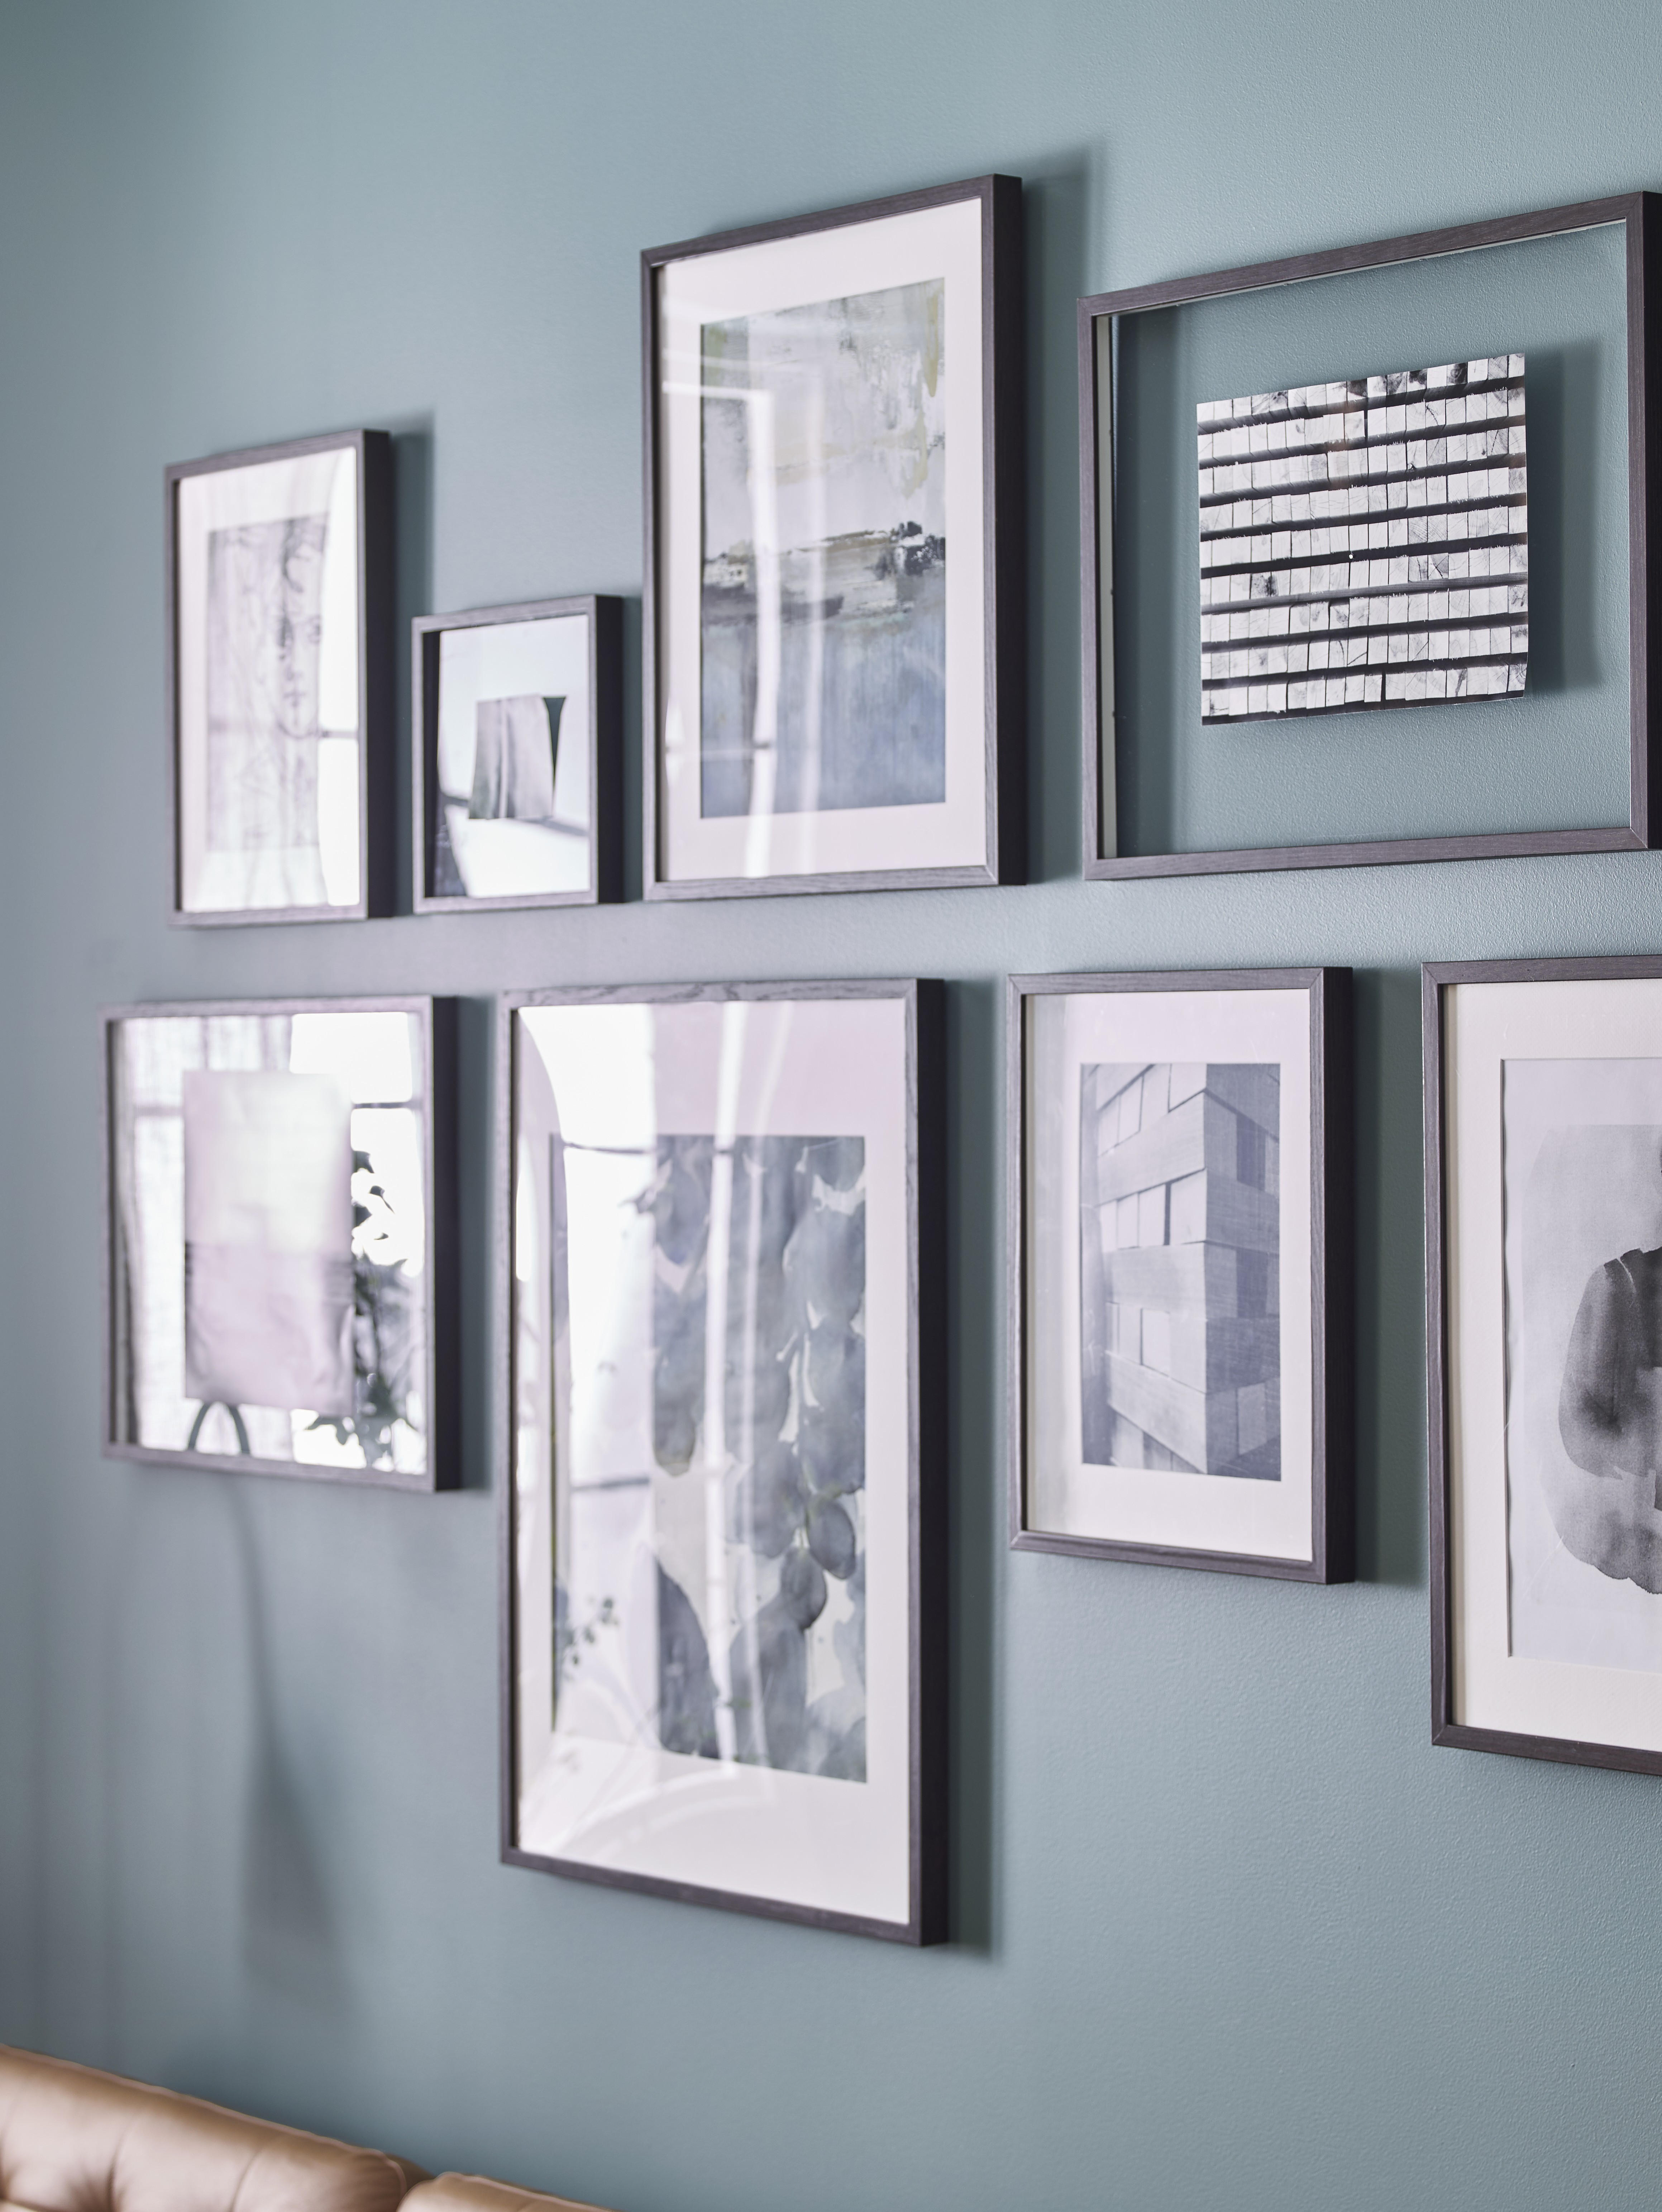 Various dark brown HOVSTA frames are arranged vertically and horizontally on a turquoise wall, displaying grayscale art.